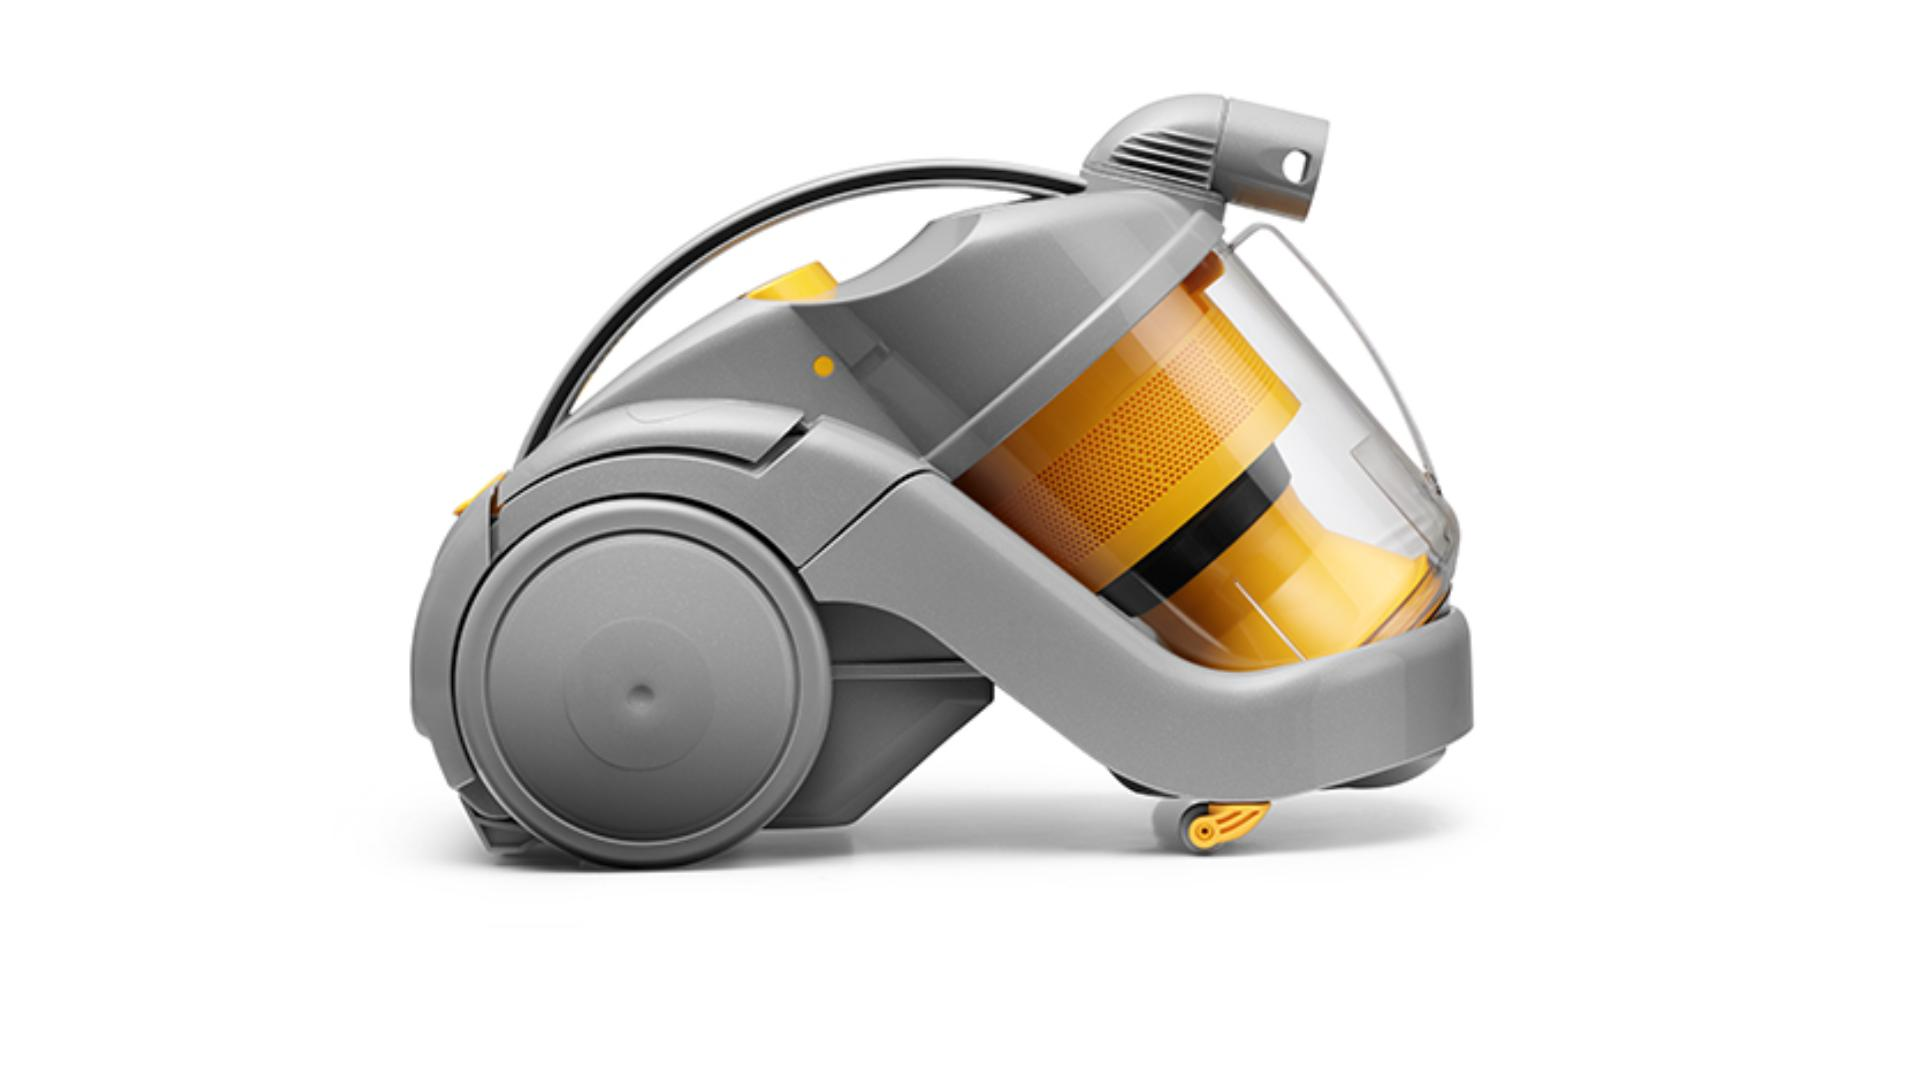 Side view of DC02 cylinder vacuum, yellow and grey